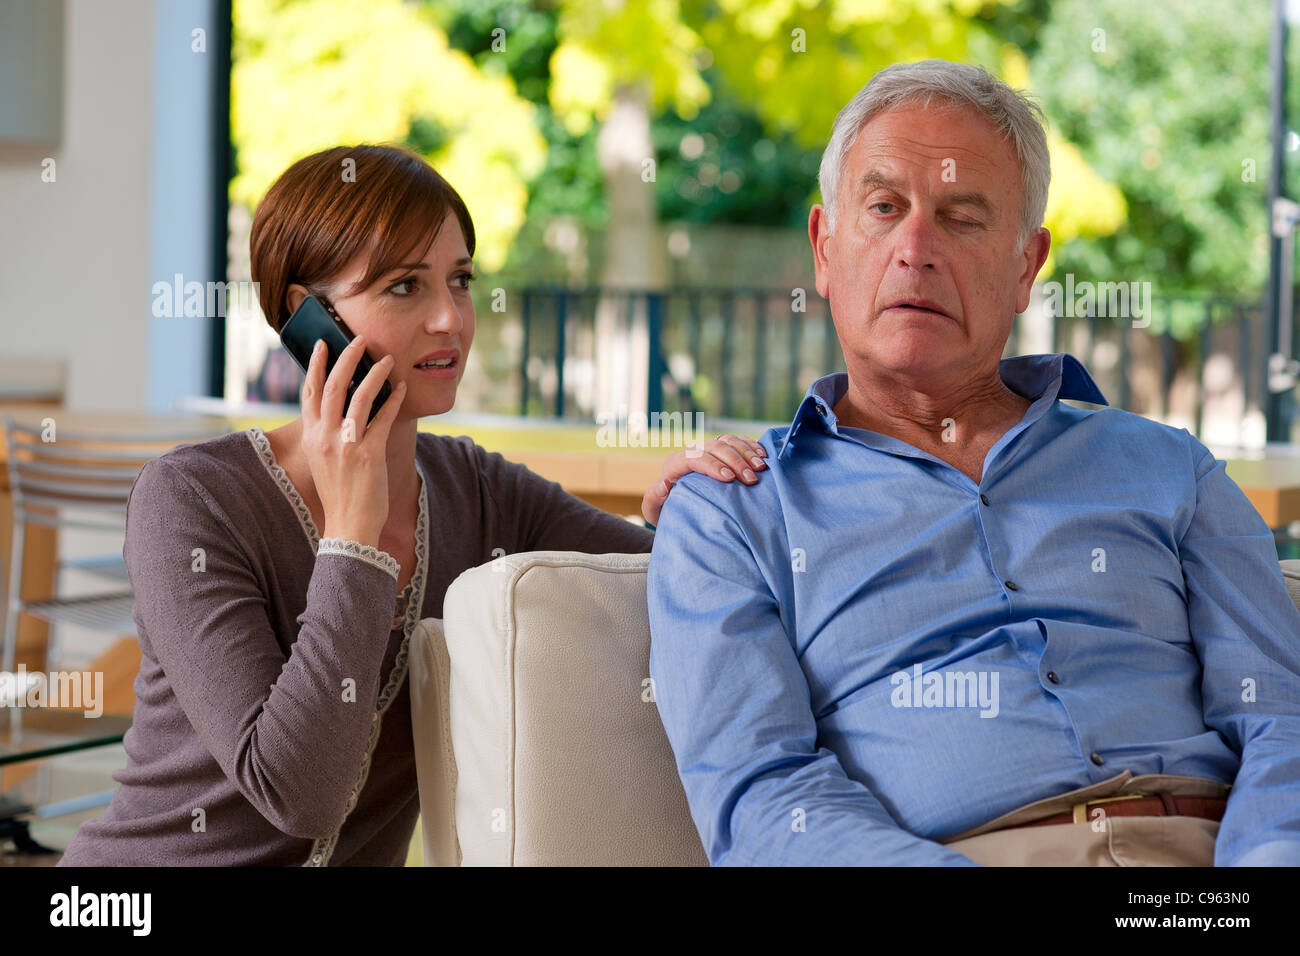 Senior man having a stroke. He is experiencing facial weakness. A woman is phoning for an ambulance. - Stock Image